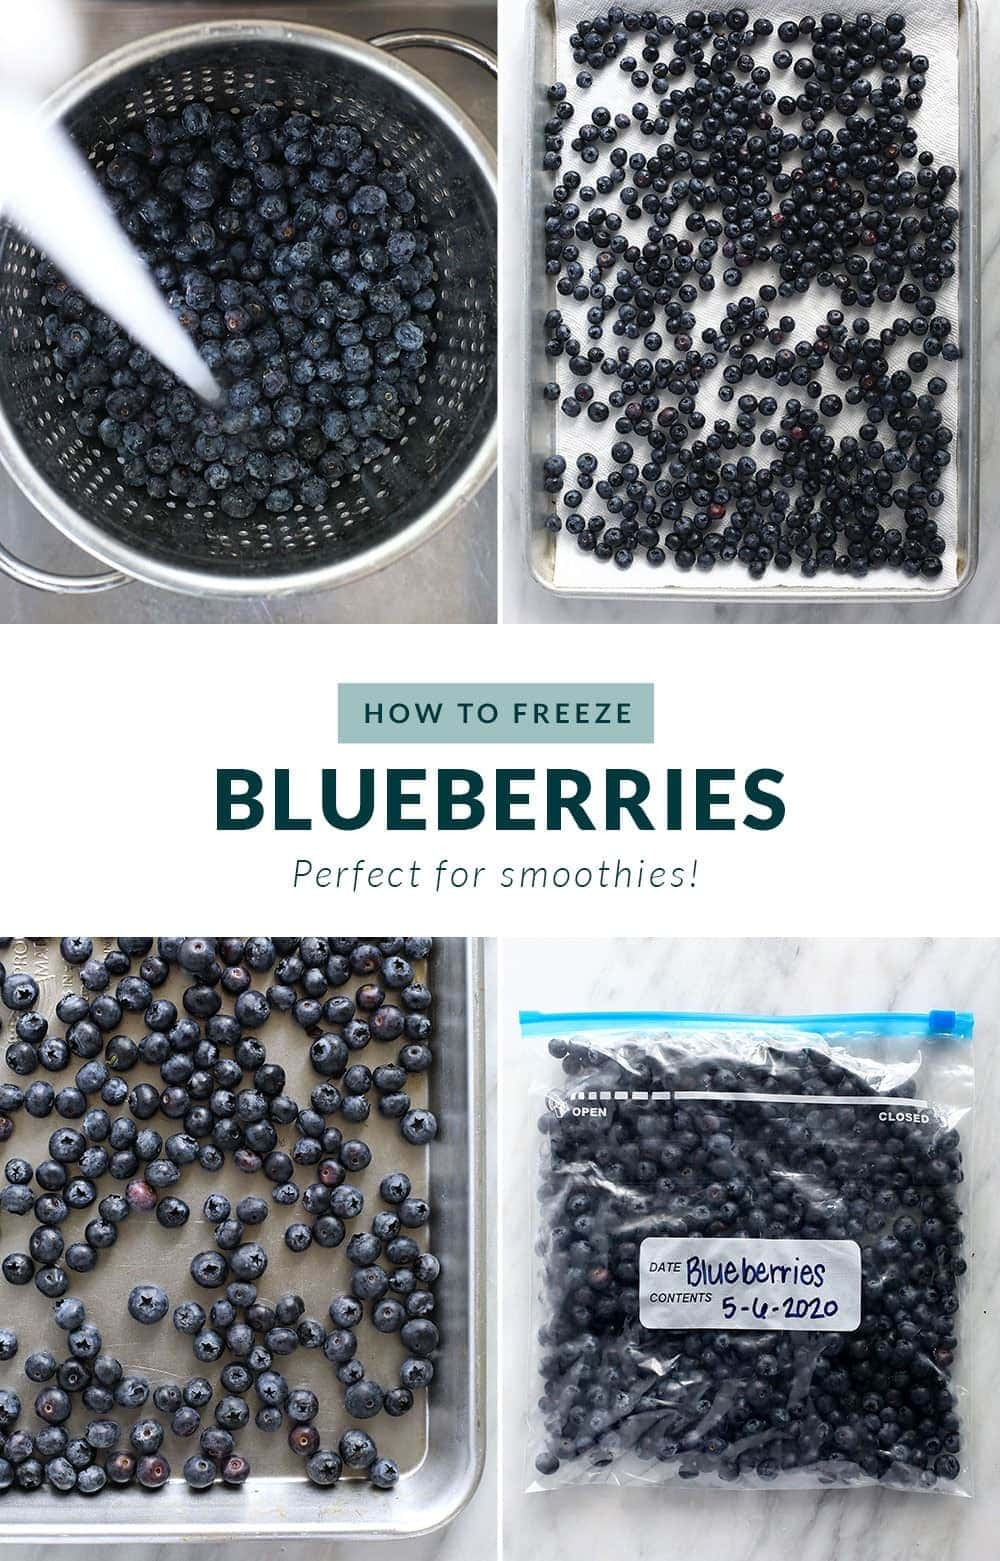 how to freeze blueberries step by step